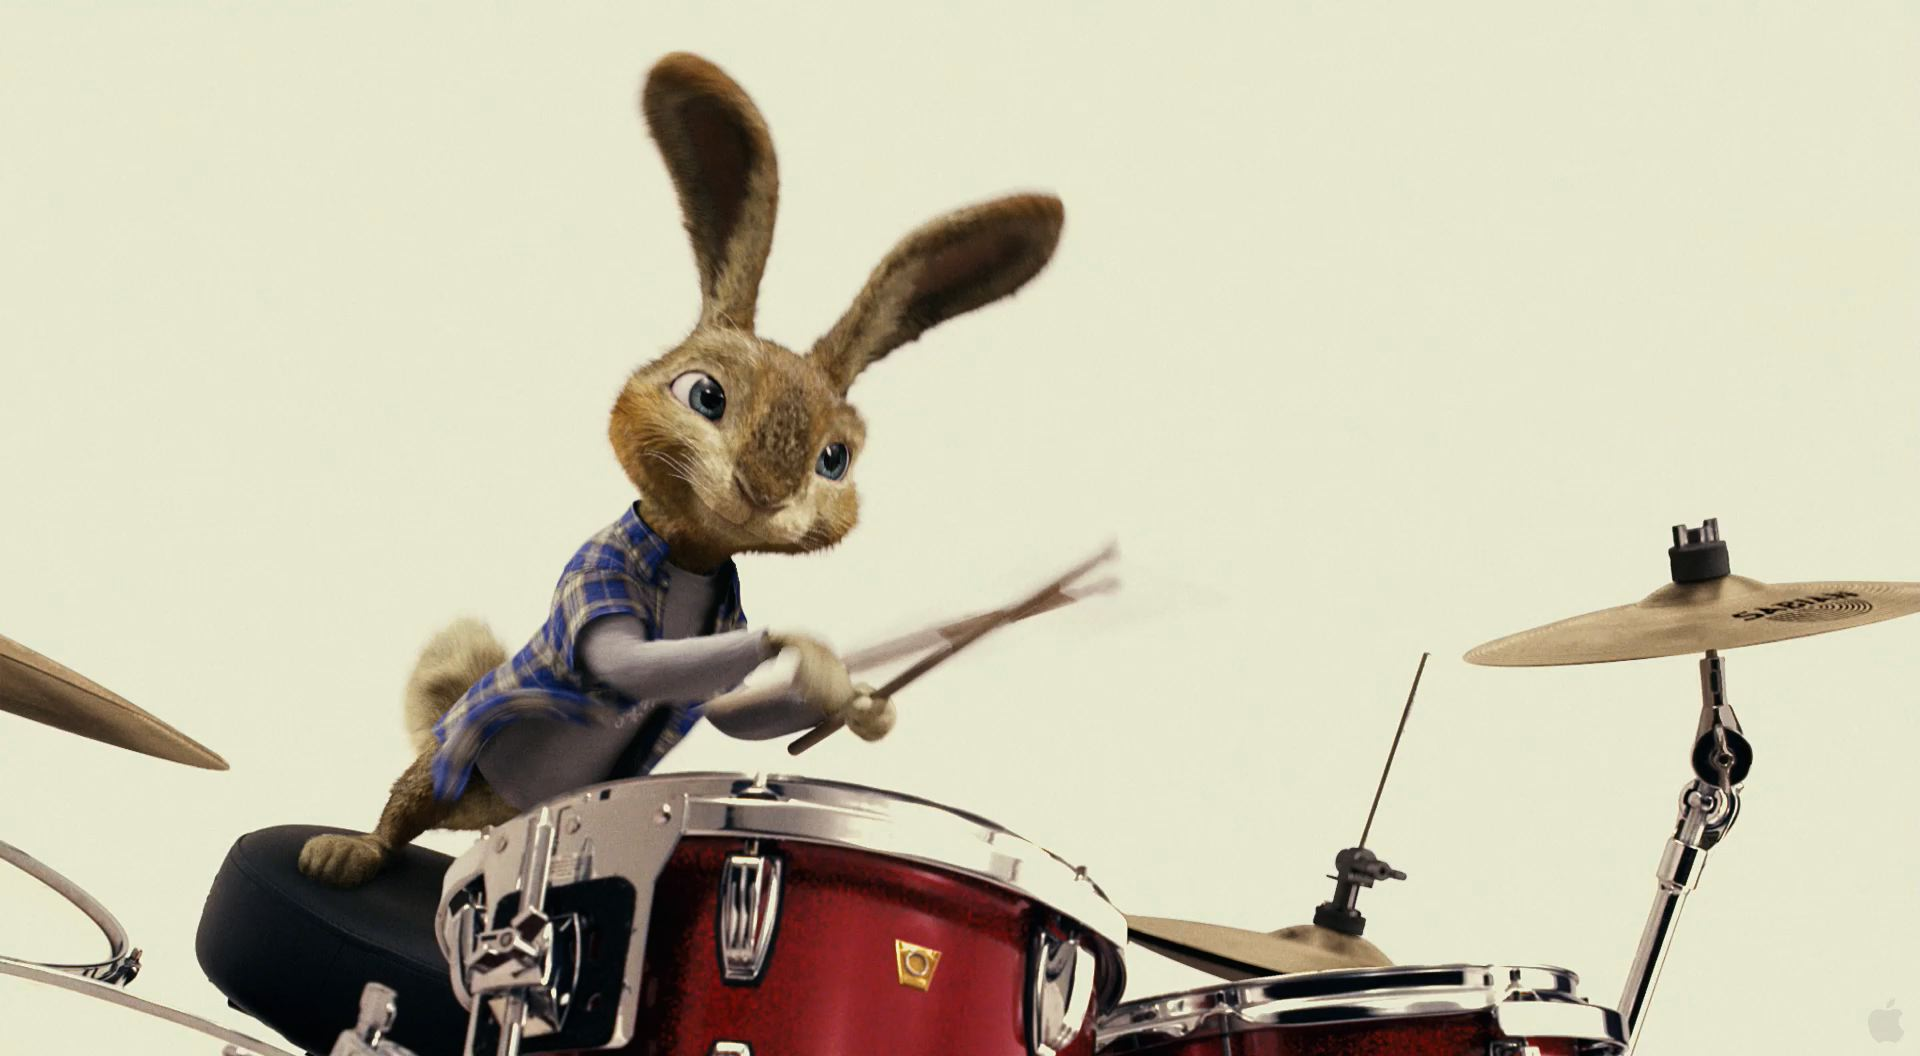 http://simplywallpaper.net/pictures/2010/12/08/Easter-Bunny-drums-Hop-Movie-Wallpaper-5.jpg